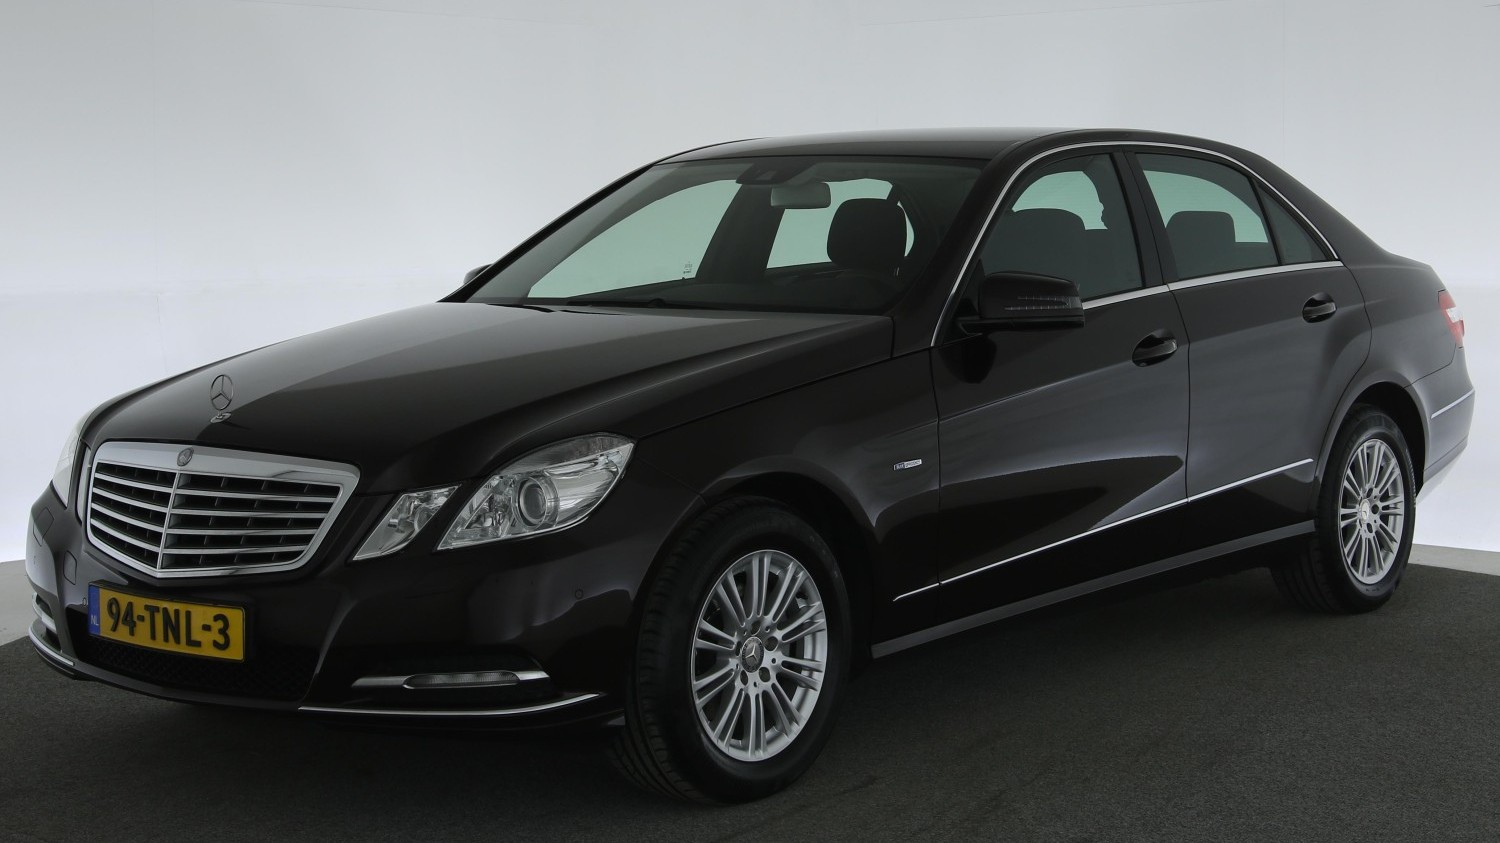 Mercedes-Benz E-Klasse Sedan 2012 94-TNL-3 1